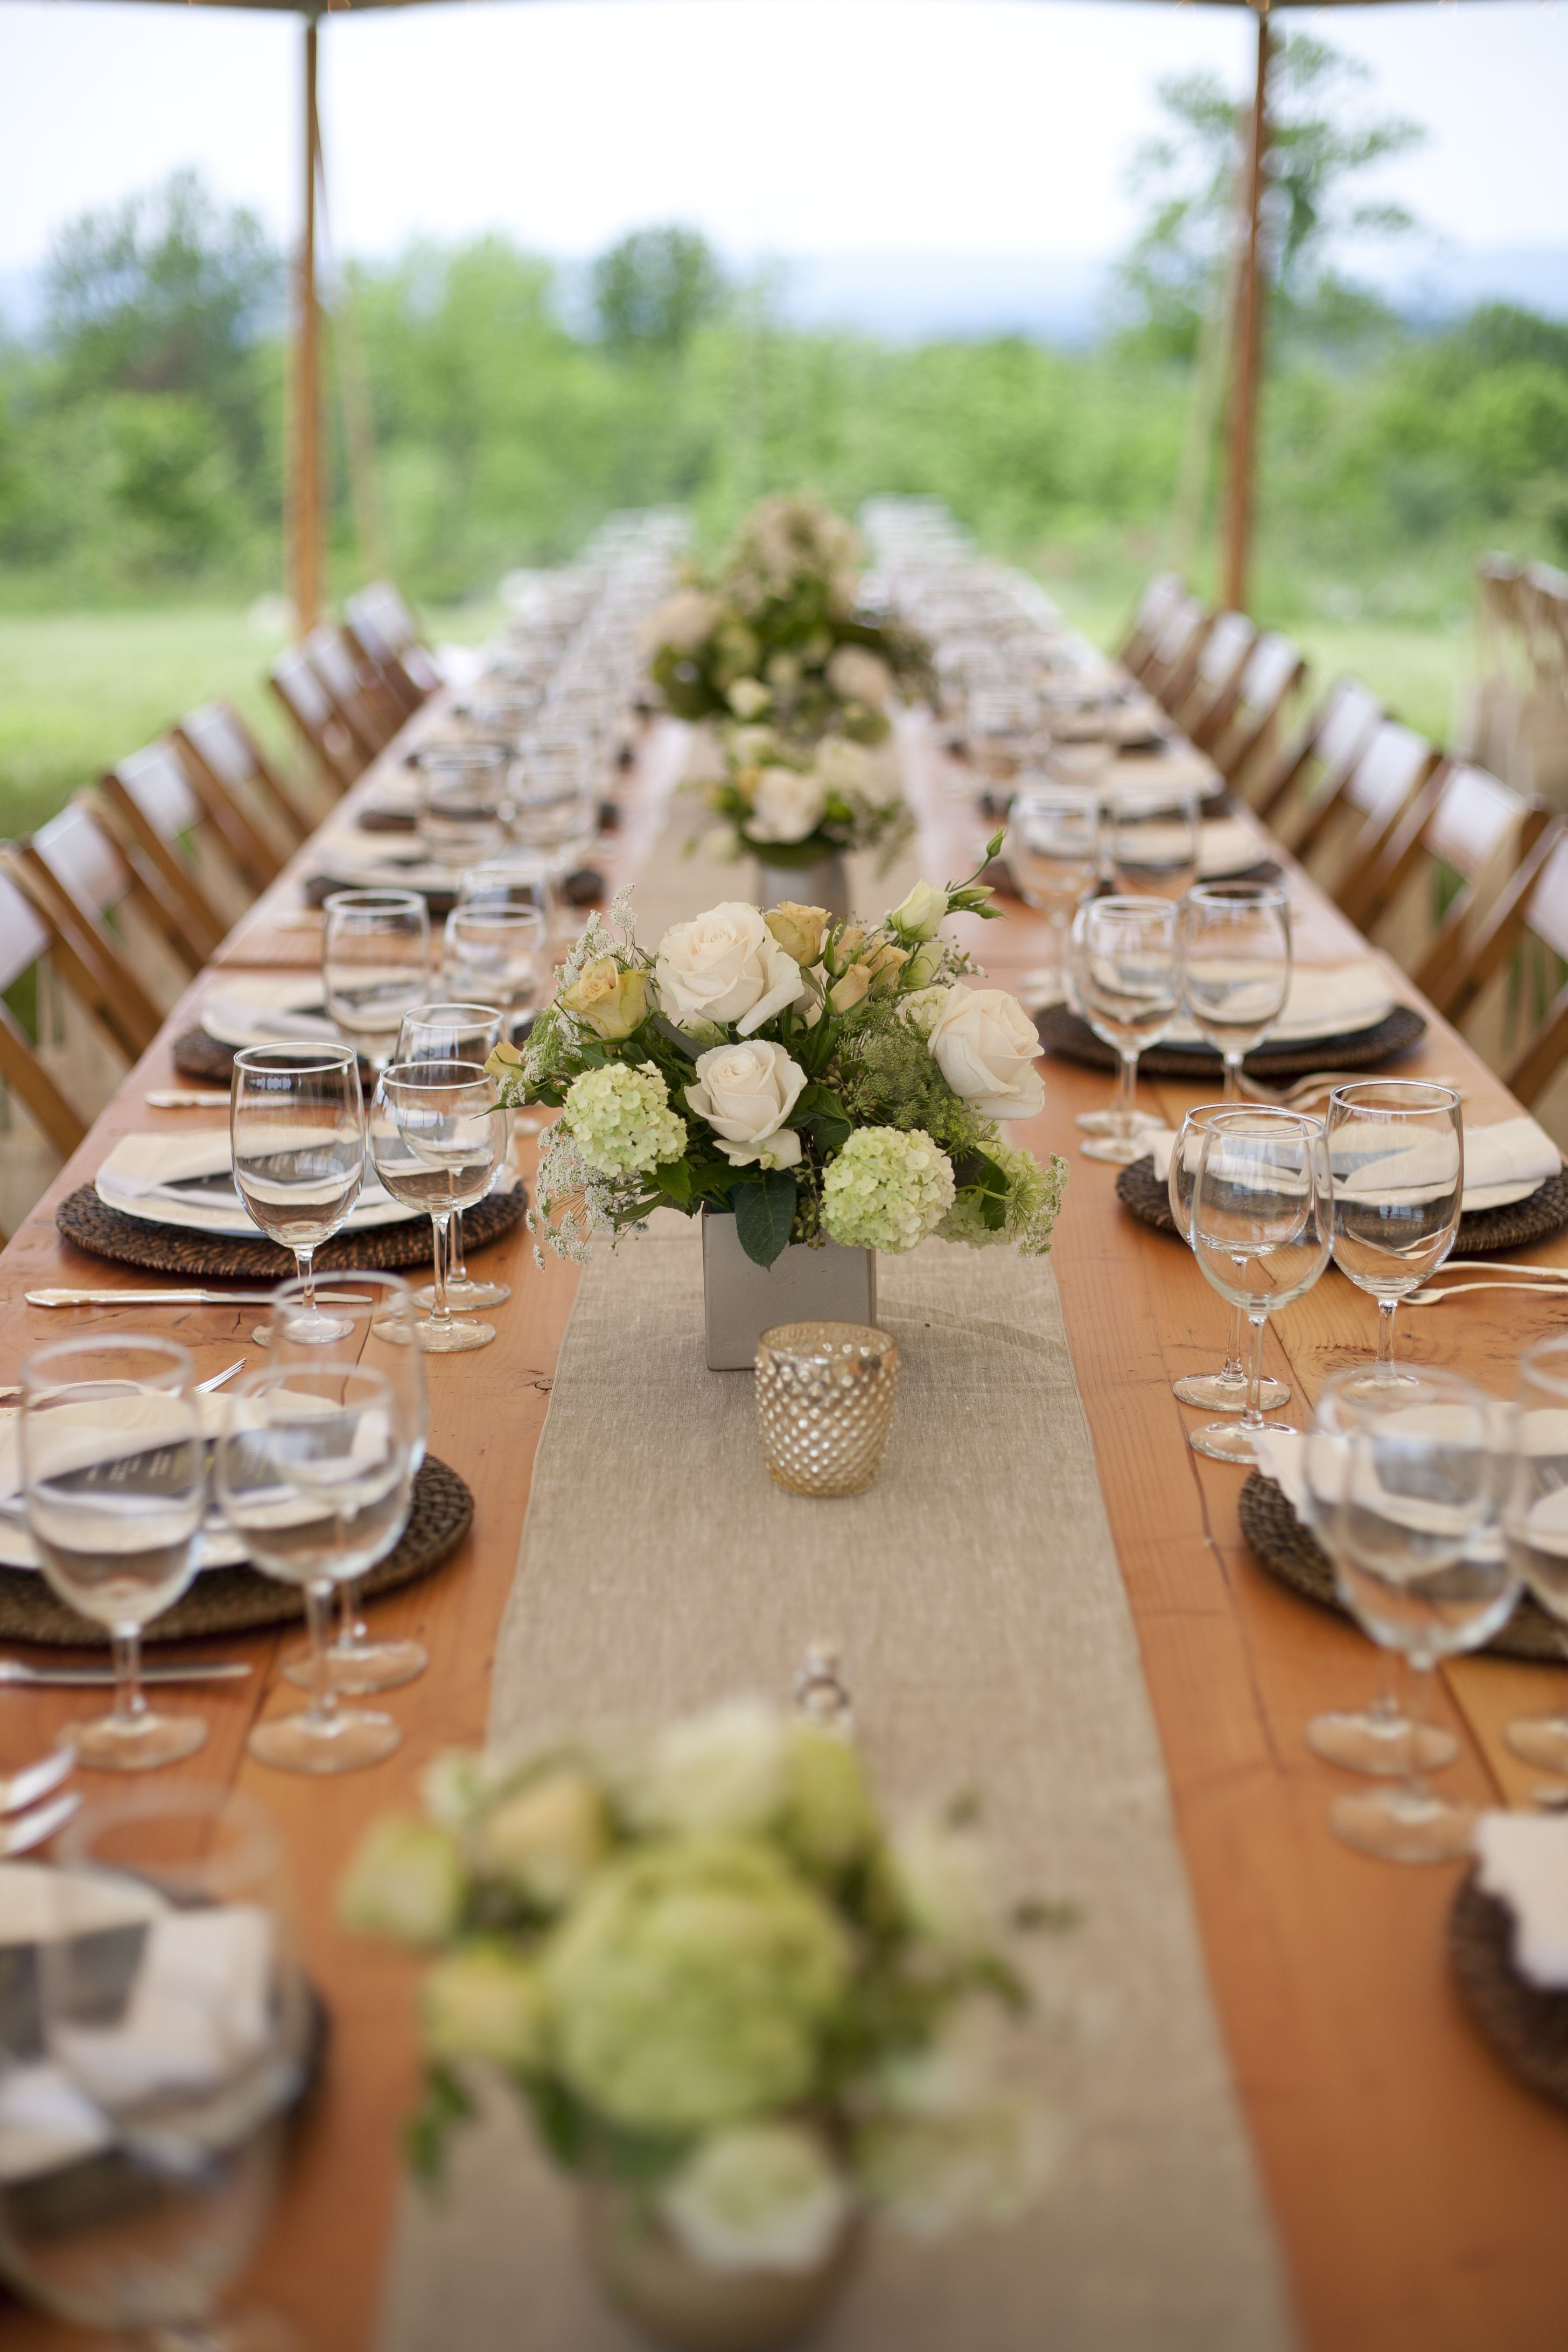 Table setting at the Virginia Field Feast in Middleburg VA